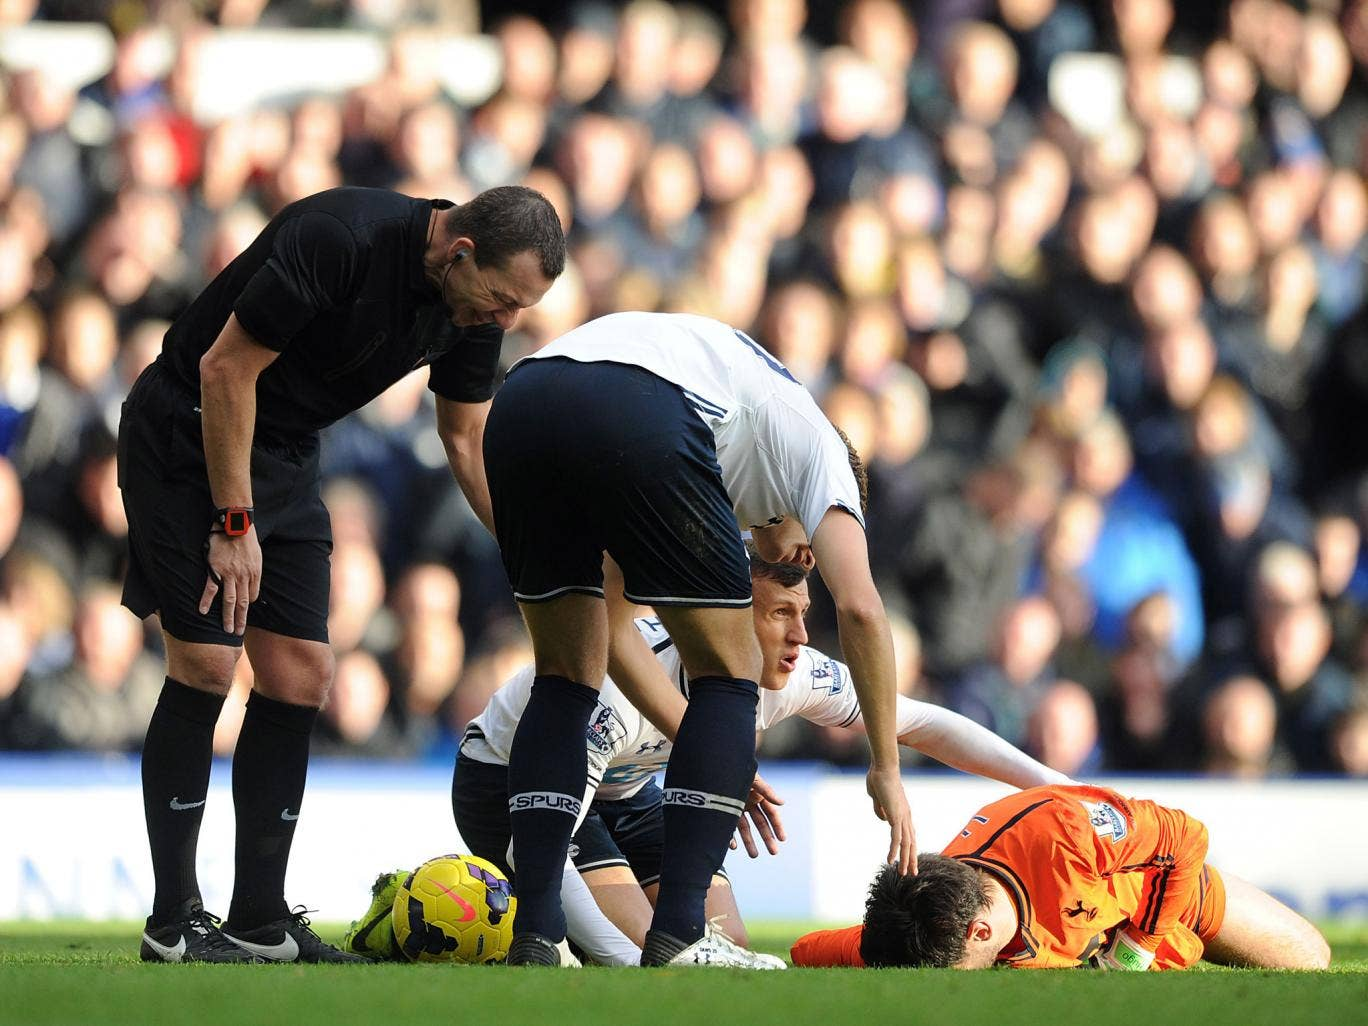 Lloris' (in orange) collision with Romelu Lukaku visibly left the Frenchman unconscious for a short time